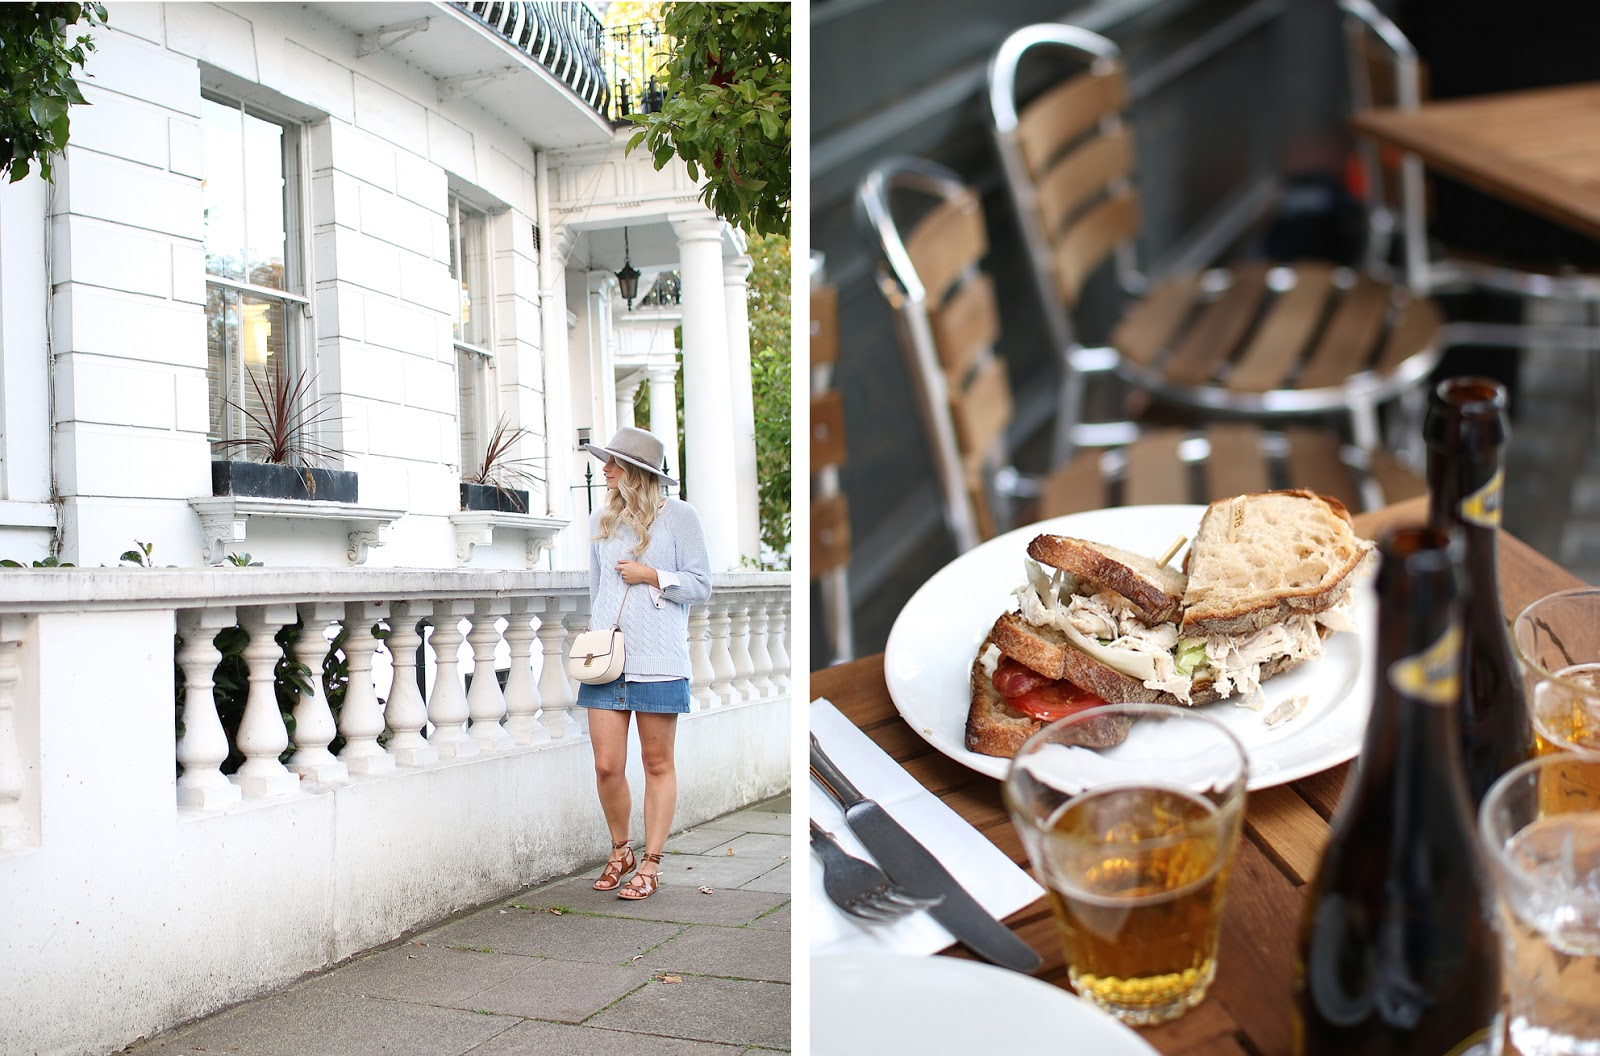 a lunch date in soho, london, eating a delicious club sandwich outside with a beer